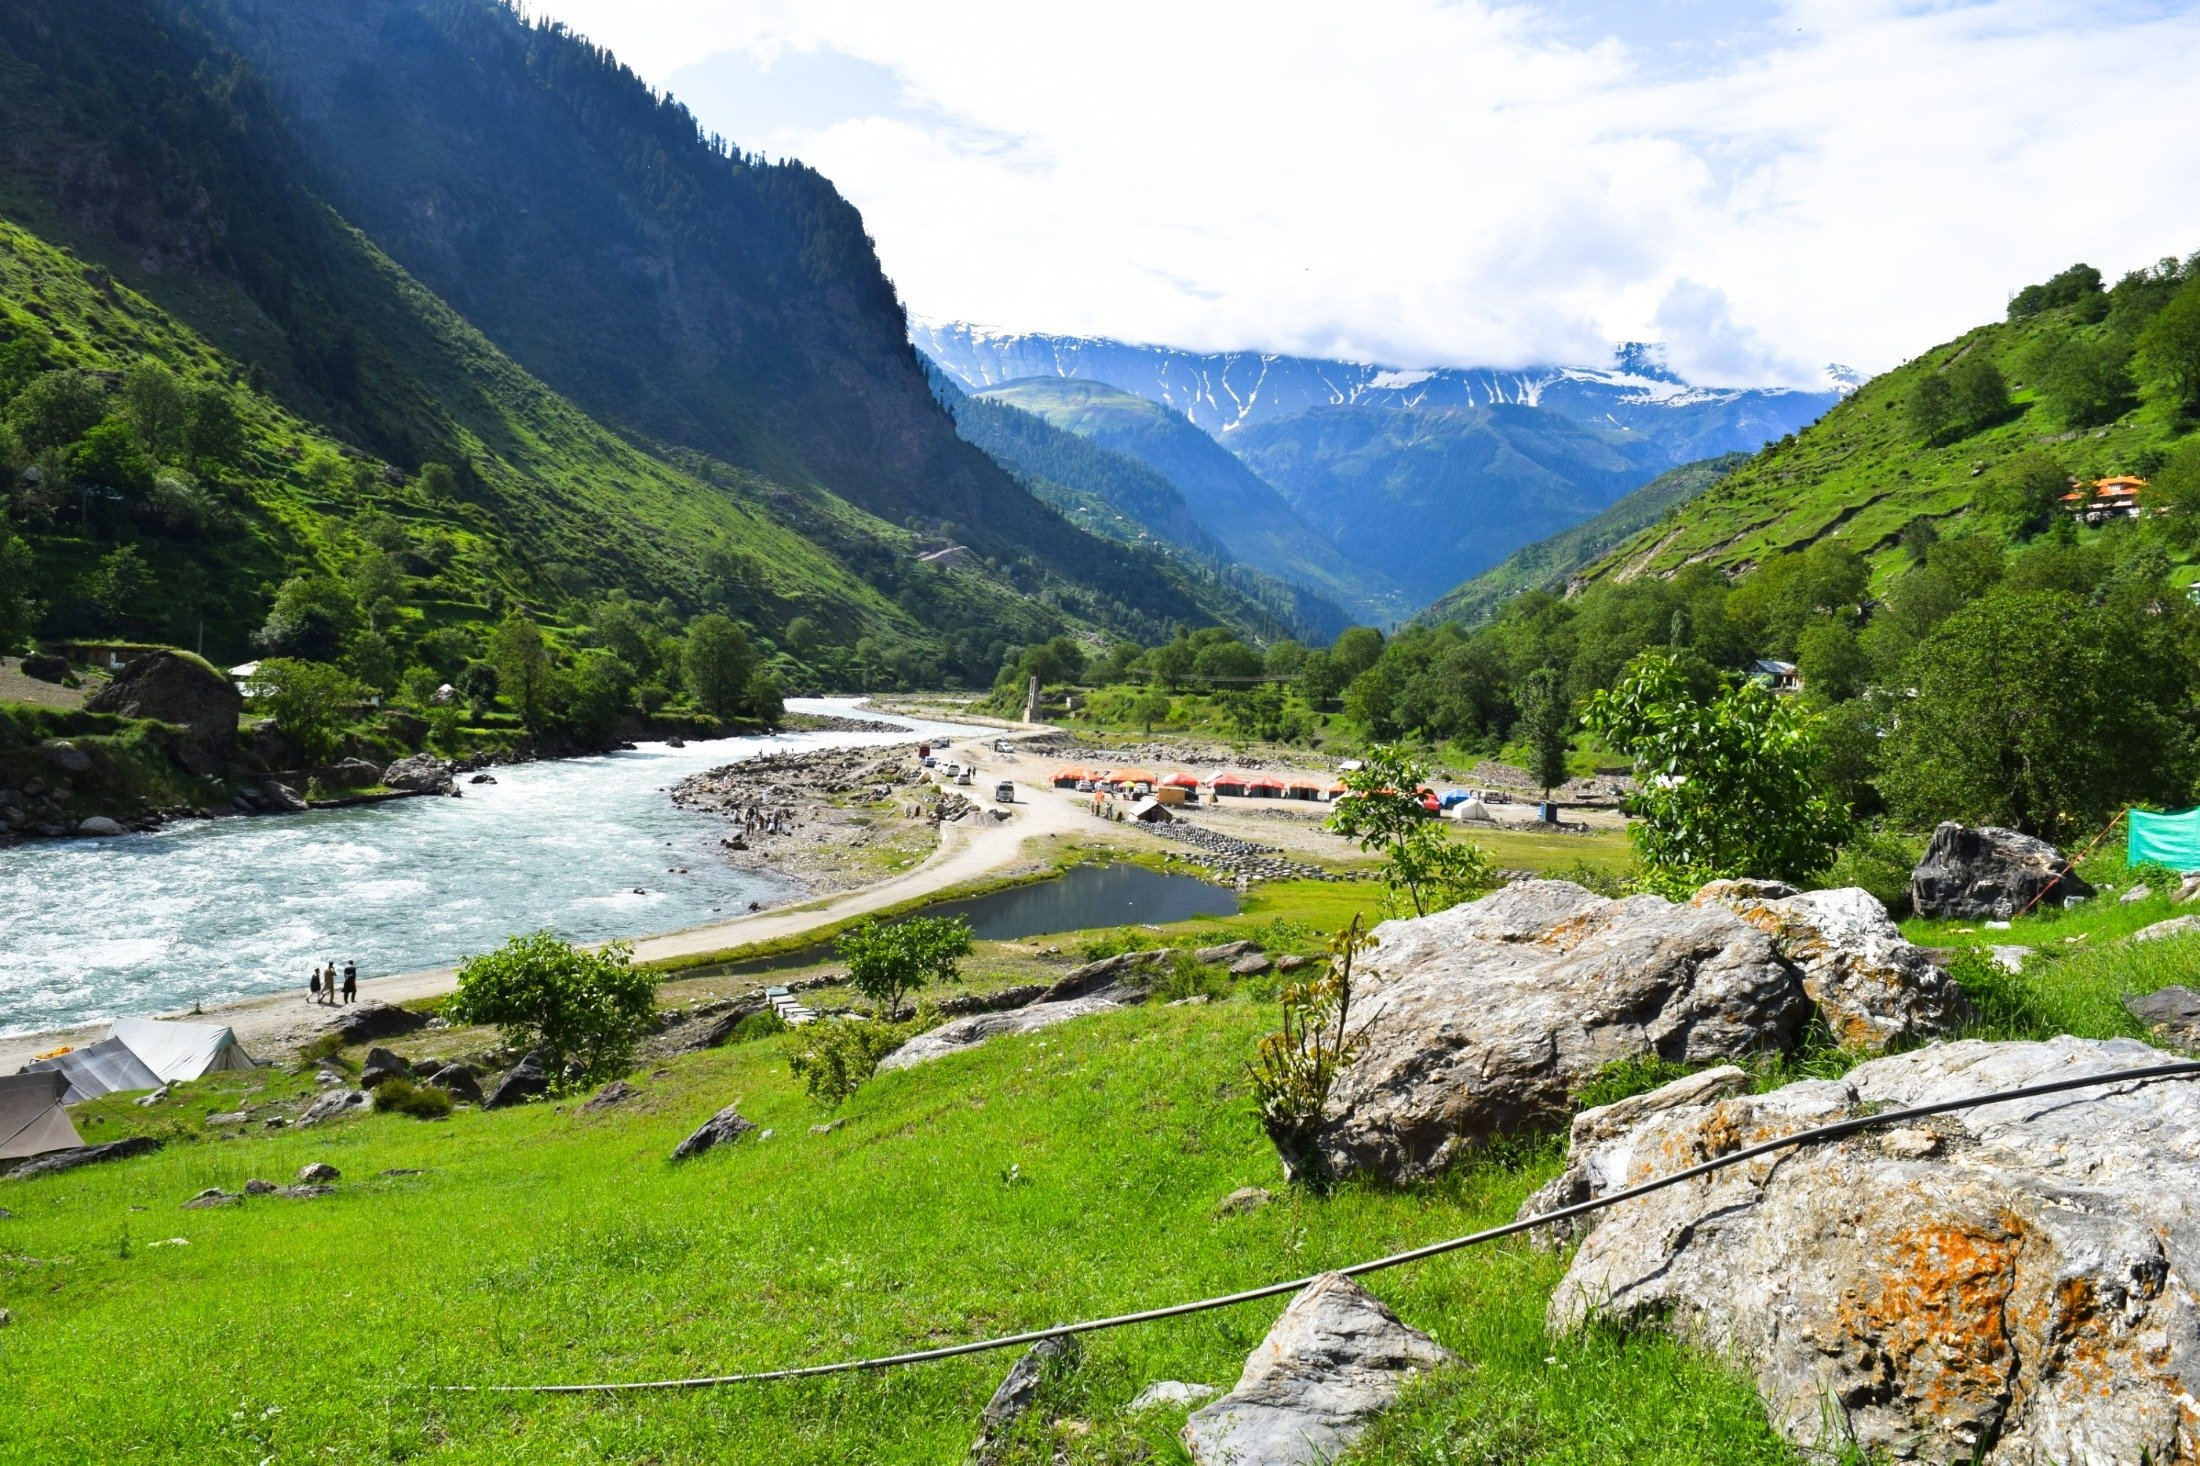 Water flows through the Kaghan Valley covered with pine forests with the Himalayan mountain range in the background, Pakistan. (Shutterstock Photo)